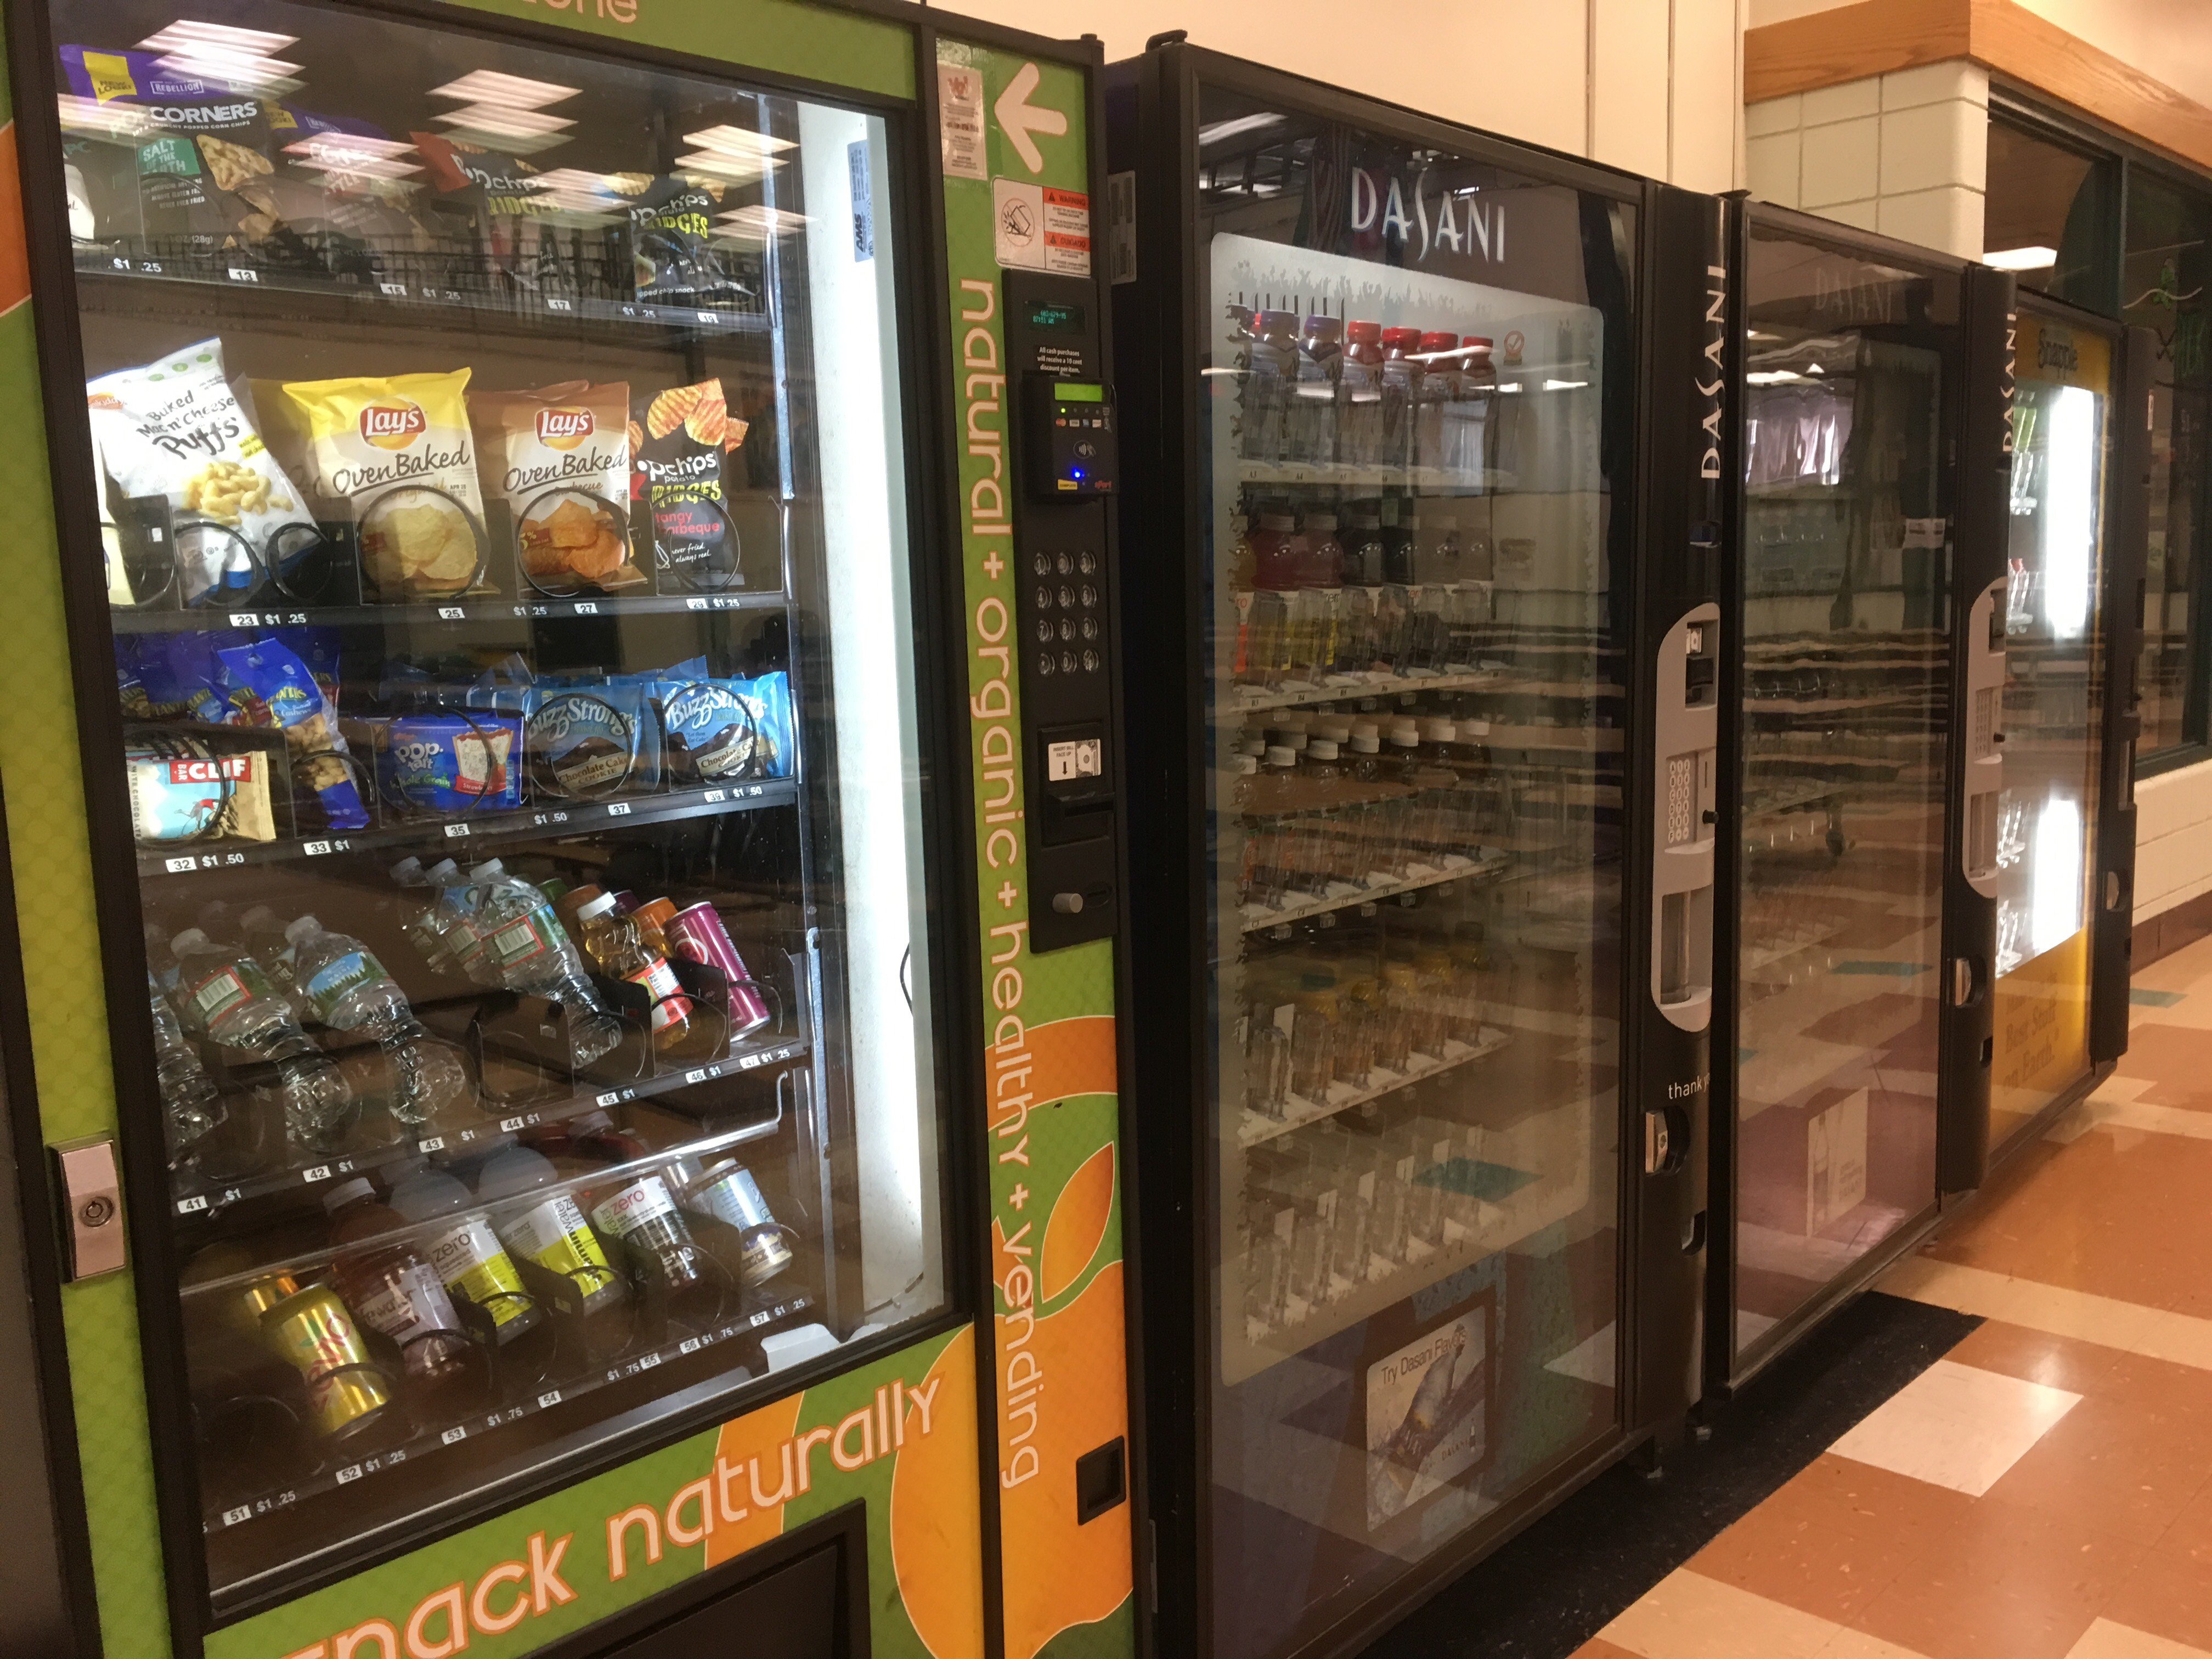 Vending machine woes lead students to new lunch options